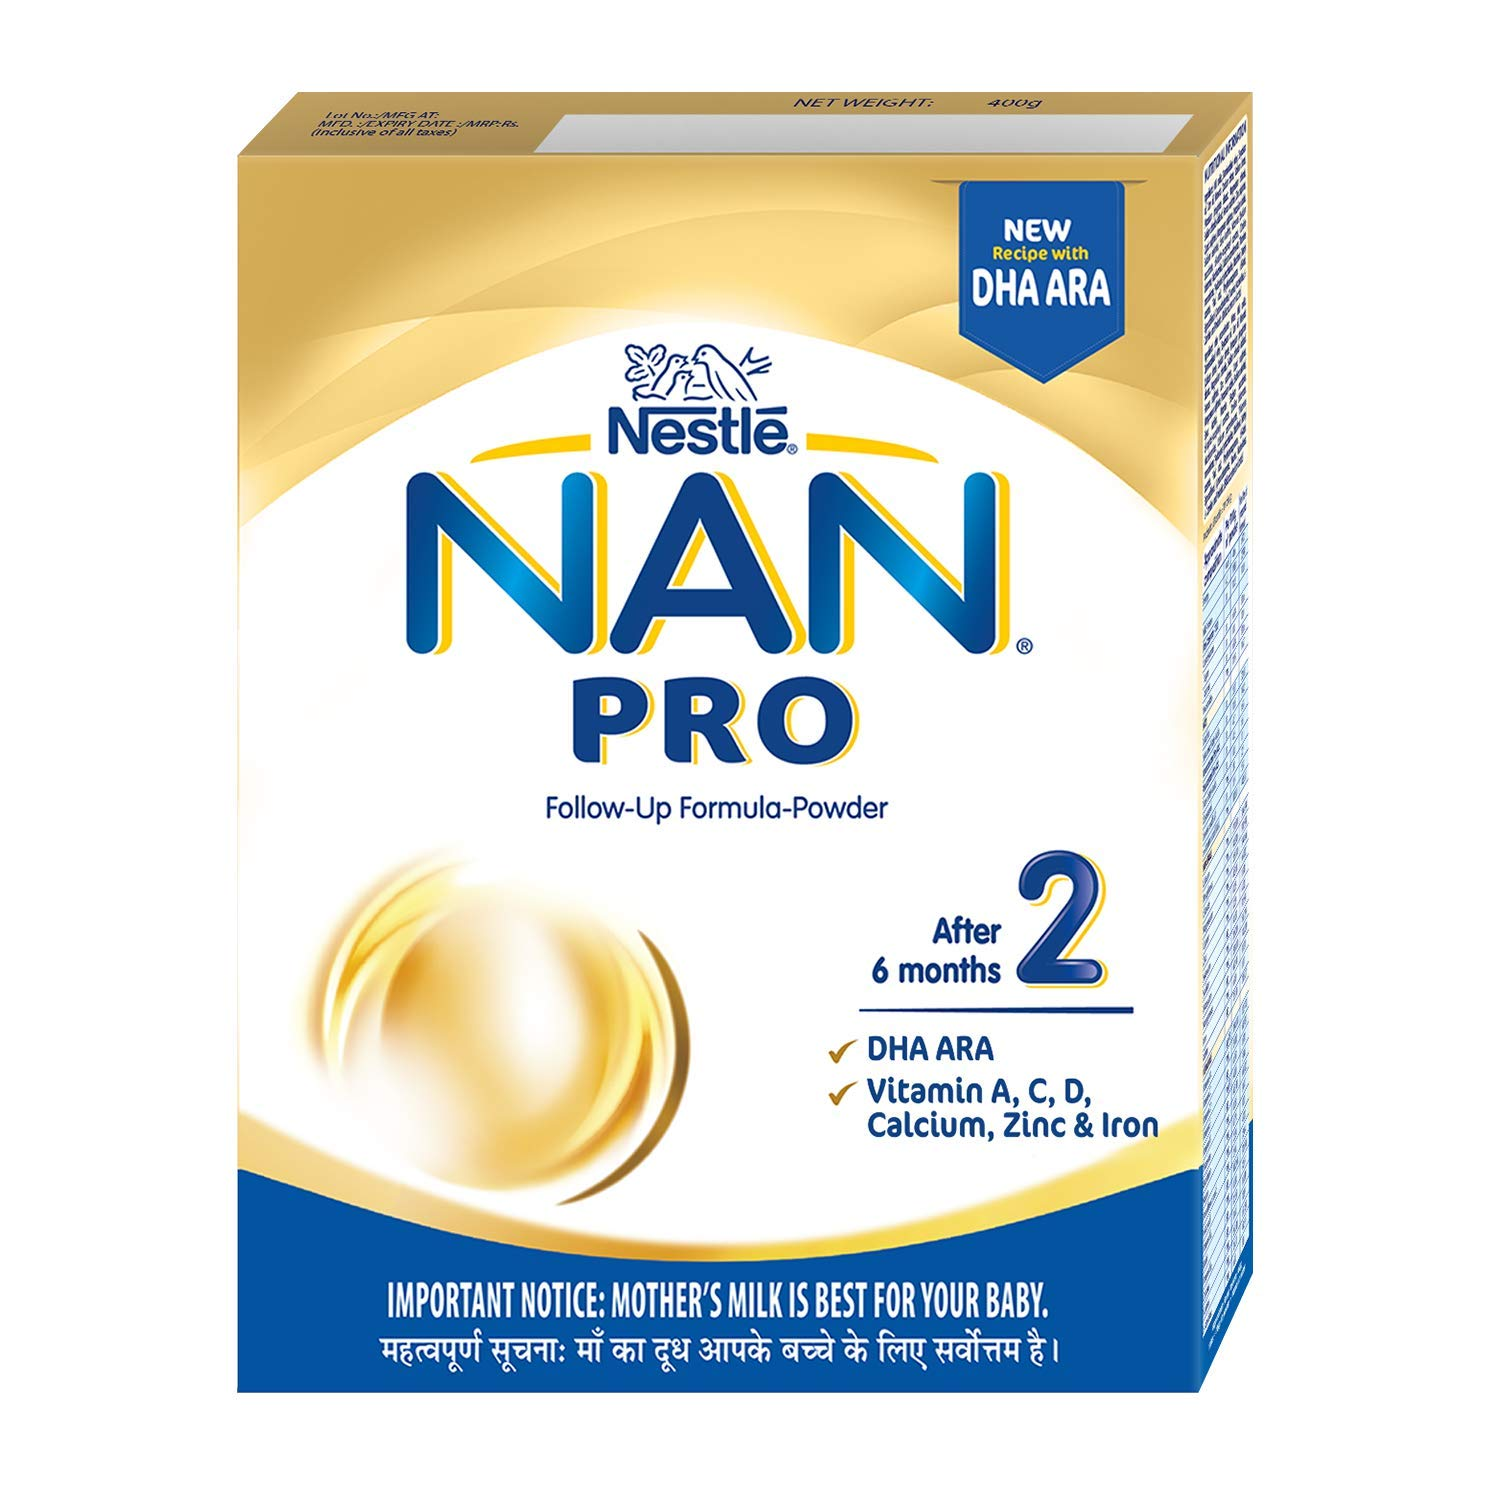 Nestle Nan Pro 2 Follow-Up Formula-Powder - After 6 months, Stag